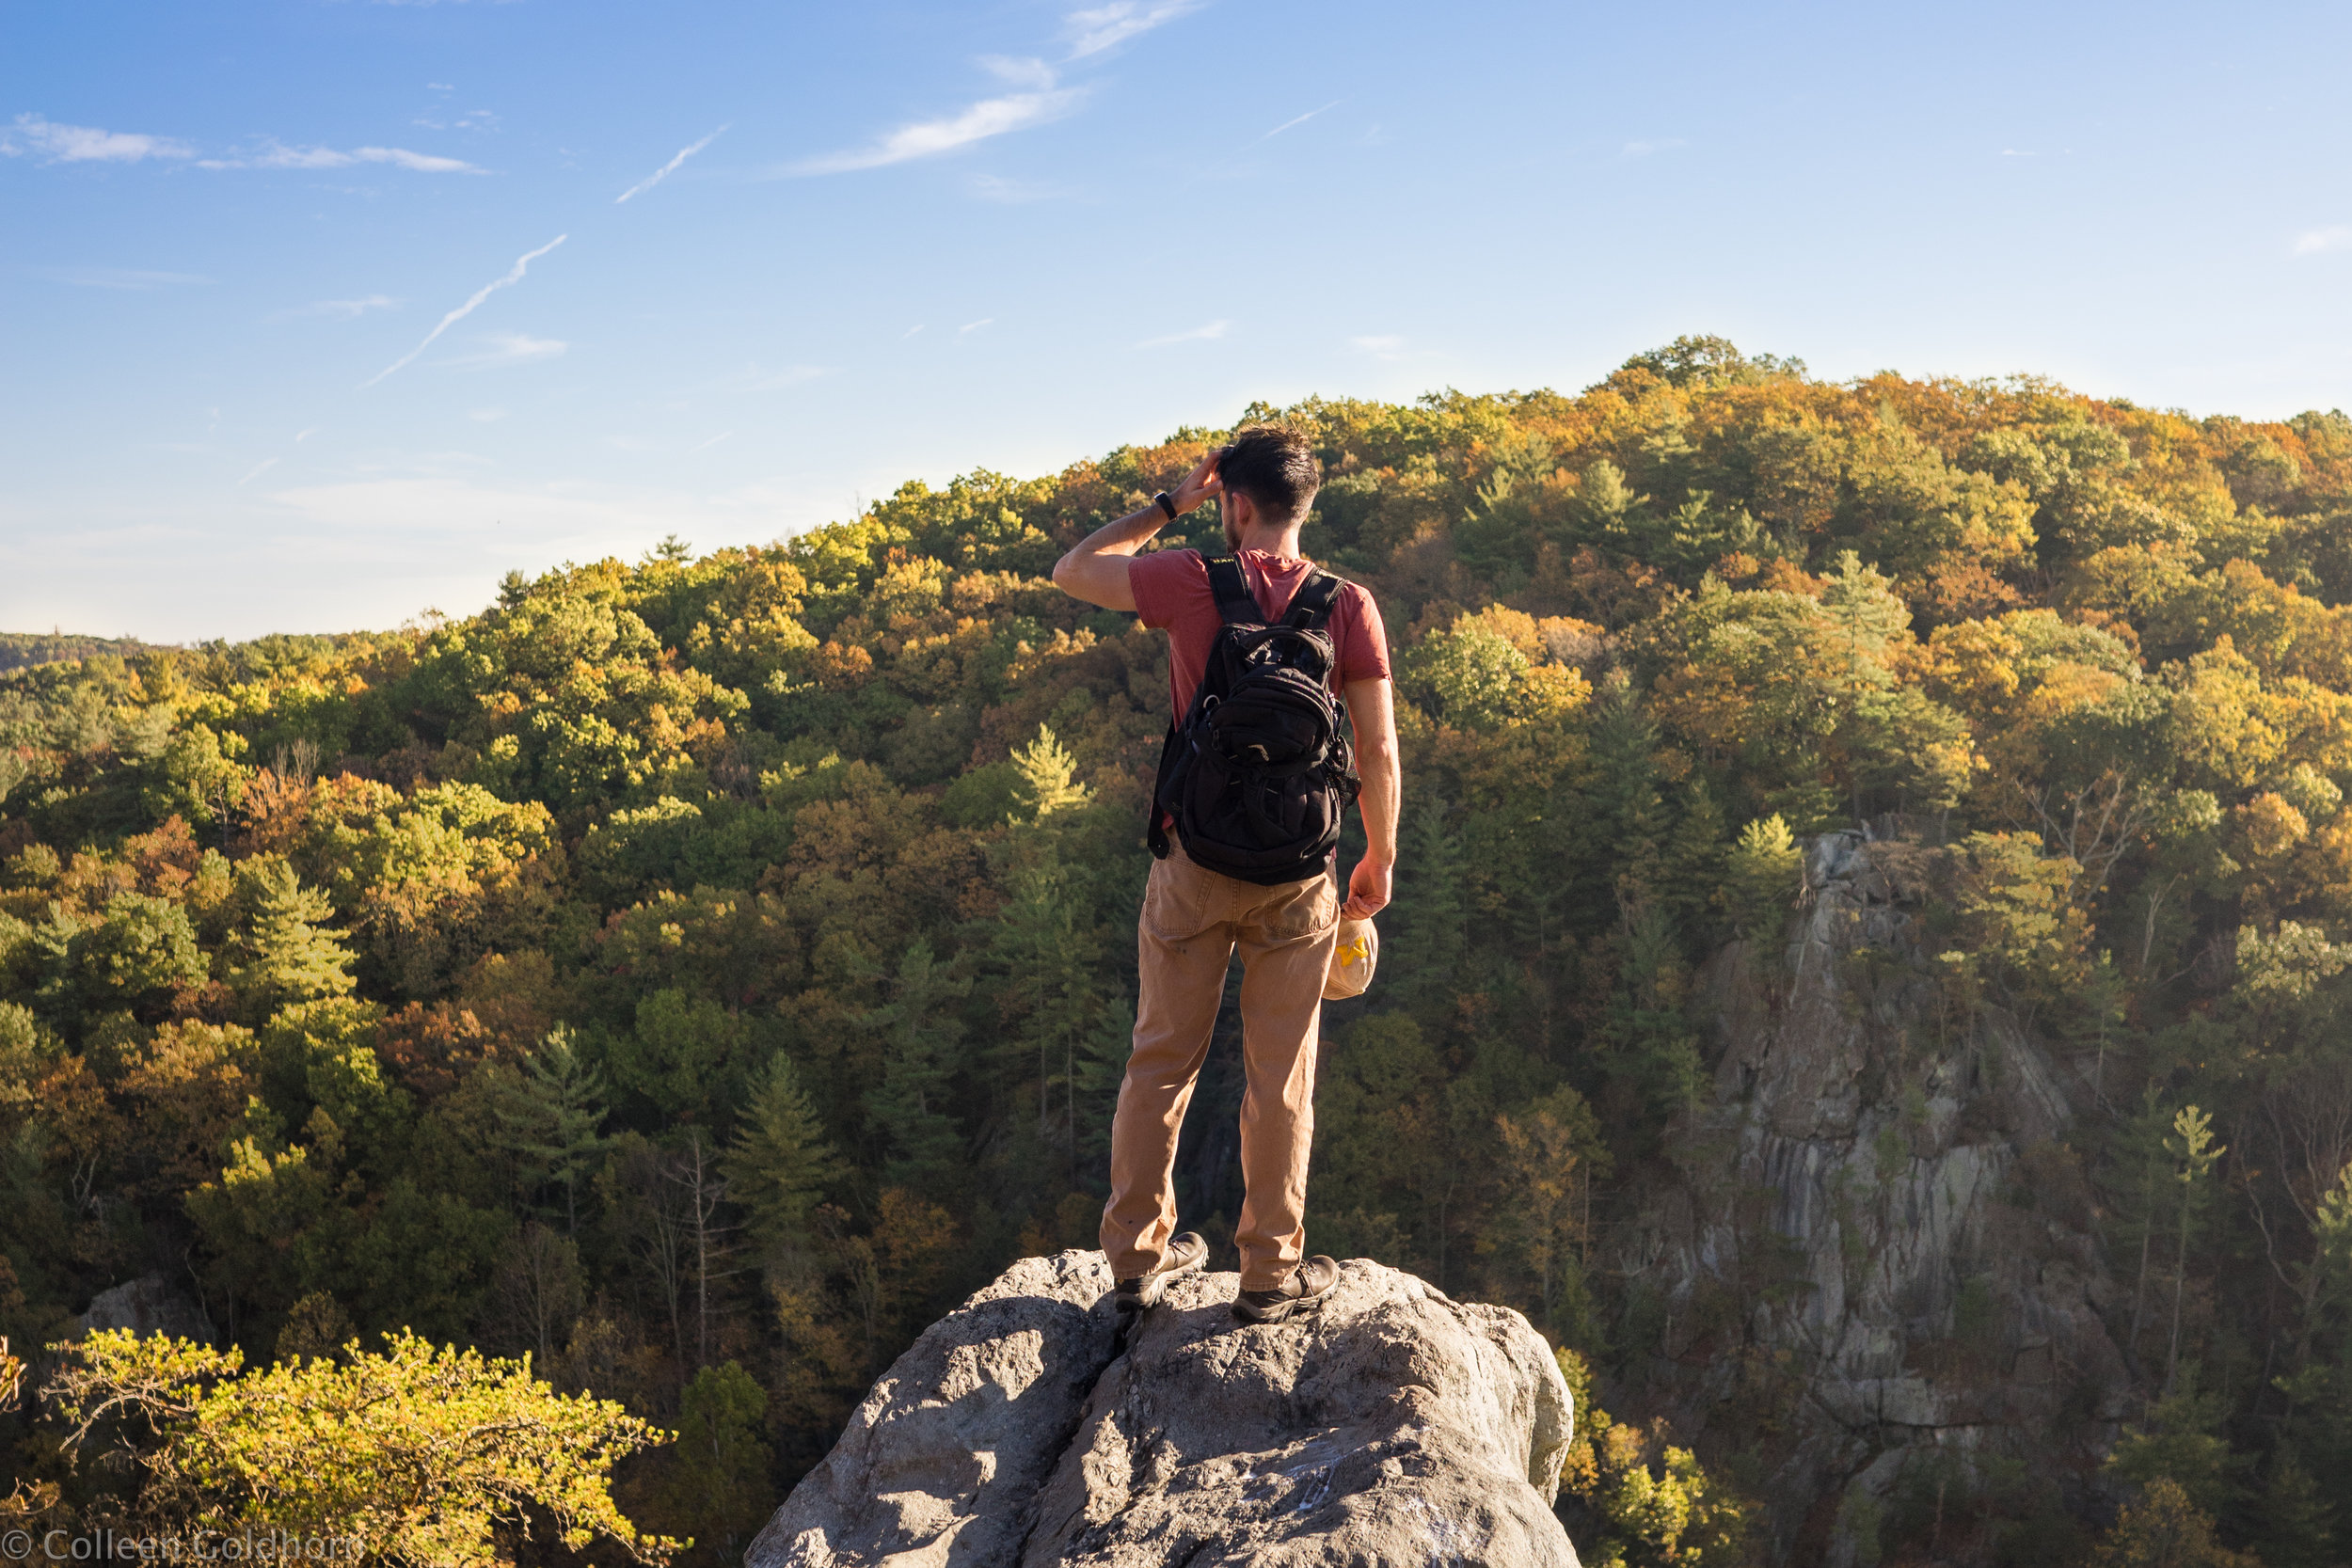 Section Hikers Are Backpacking's Unsung Heros - Hiking a long-distance trail in sections is sometimes seen as the easier option. However, after a closer look, it is clear that choosing to section hike requires years of perseverance, dedication, and careful planning.